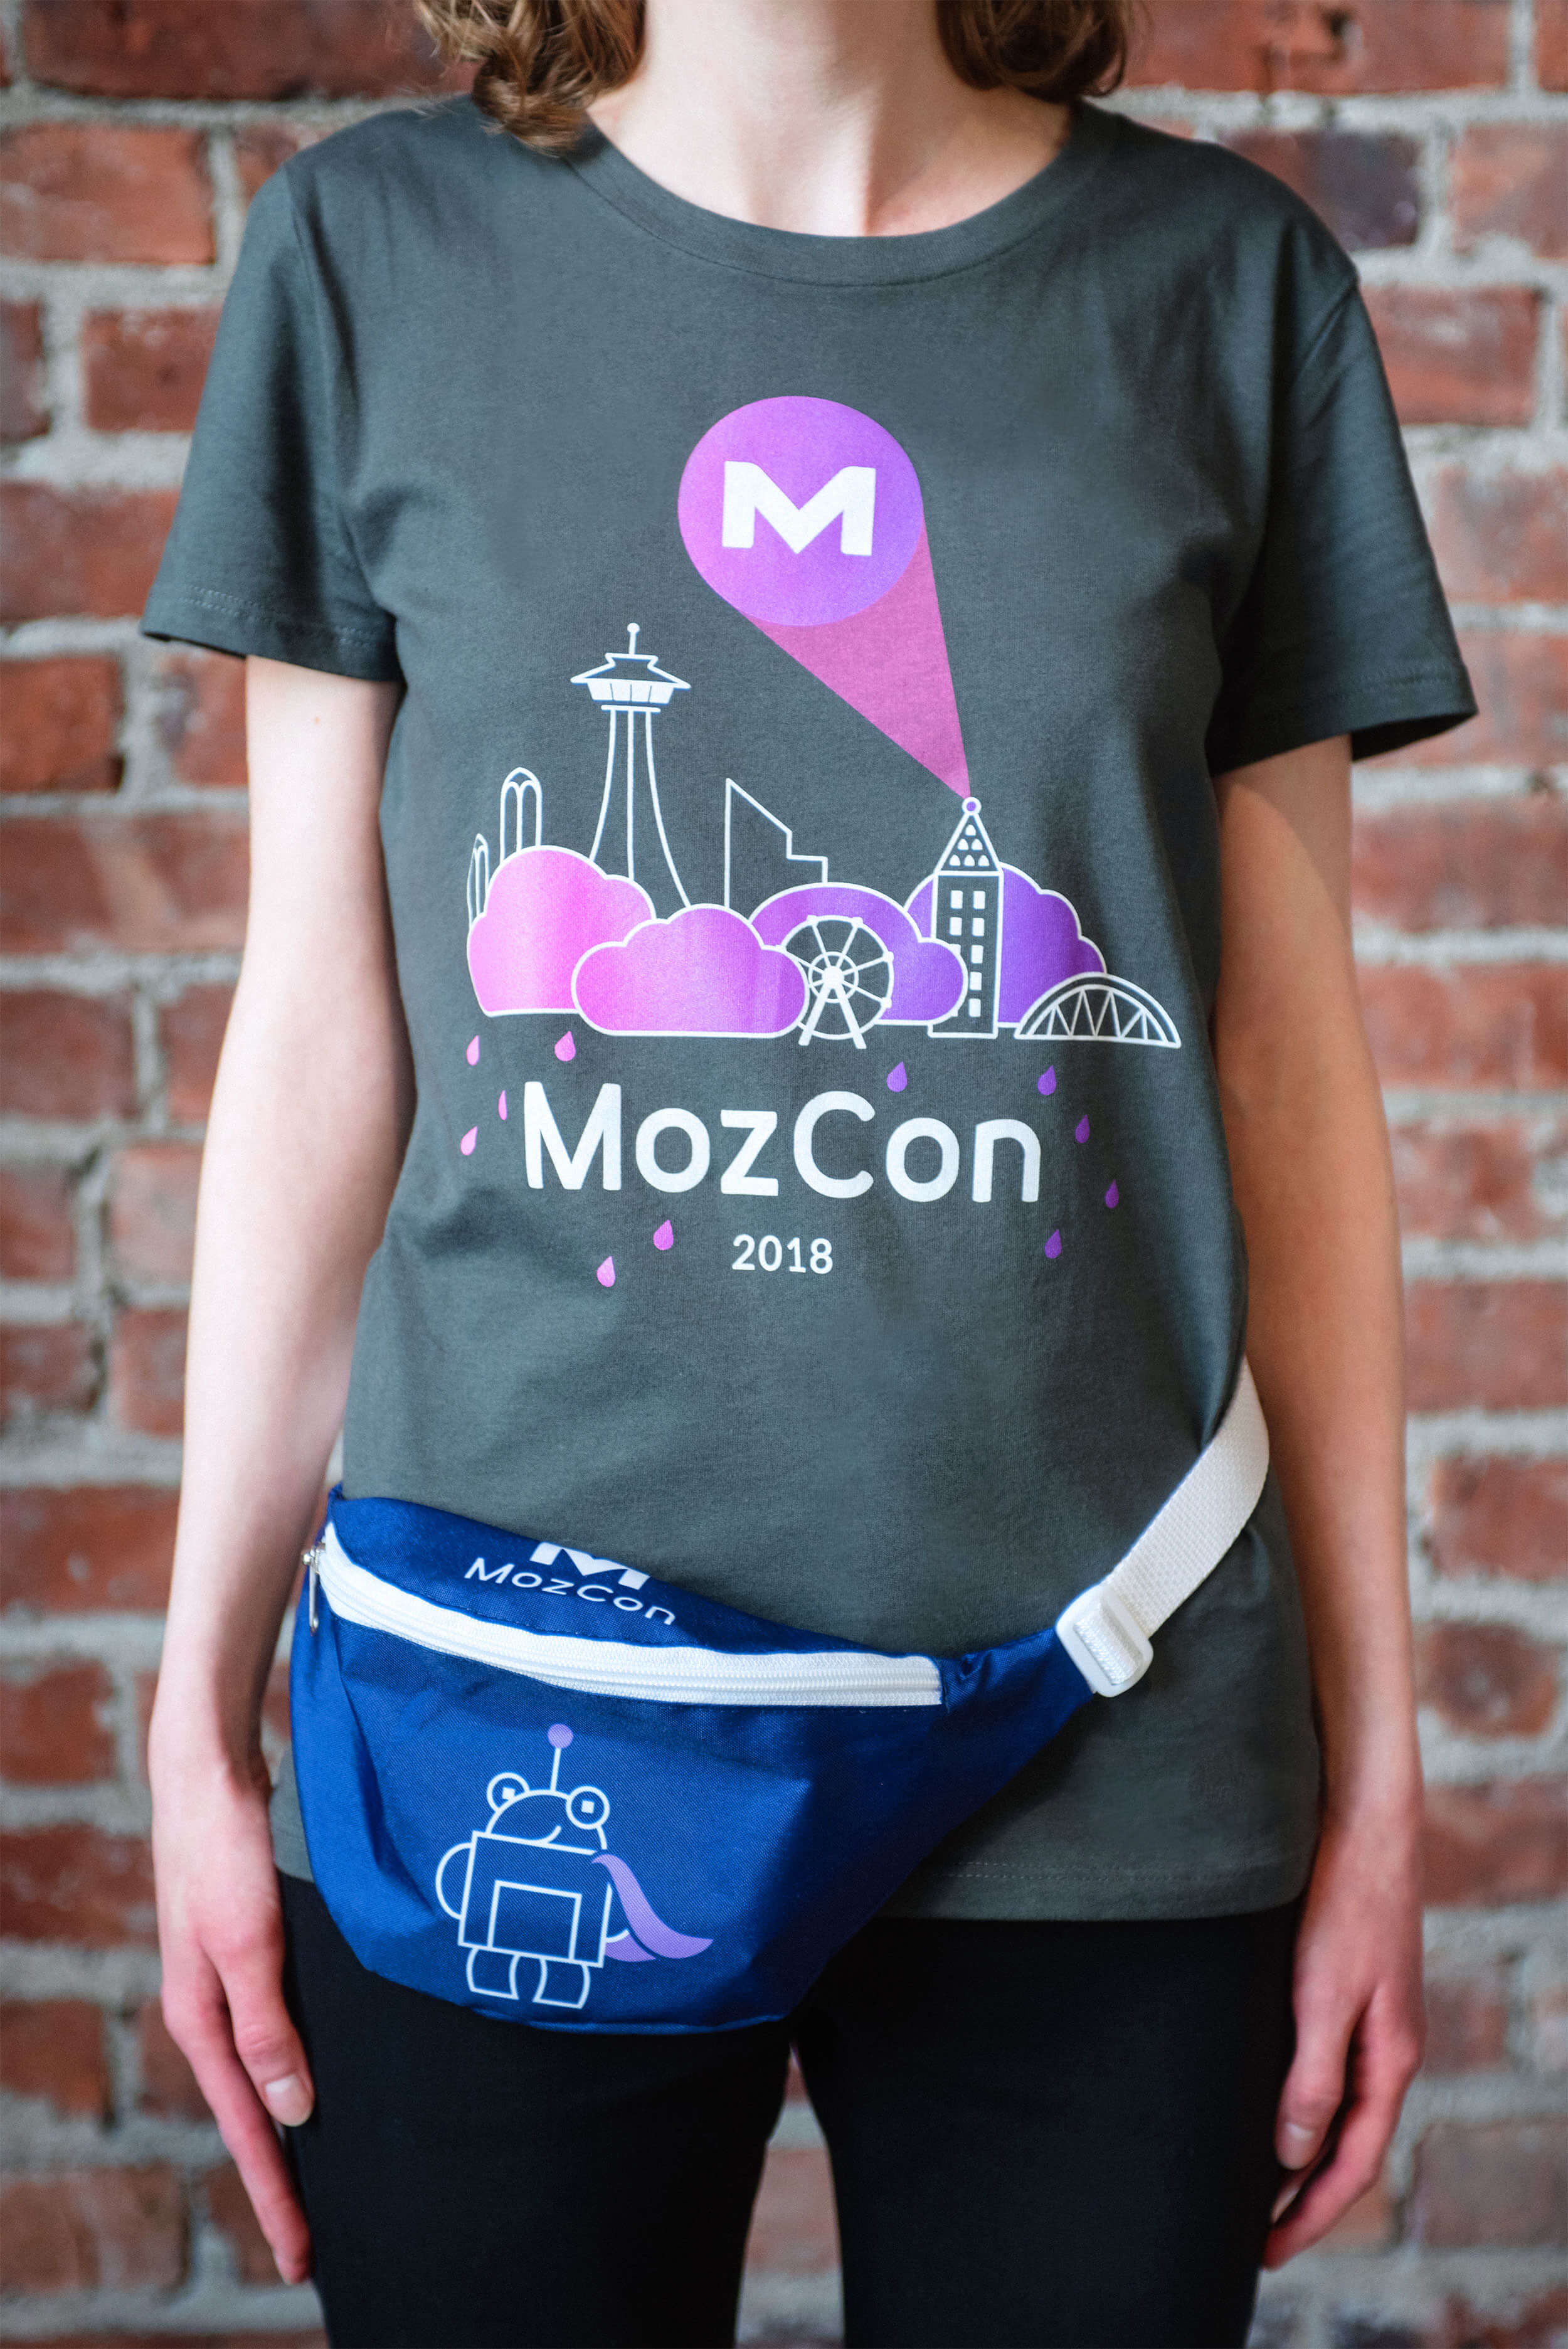 MozCon 2018 swag: Mozopolis cityscape graphic tee featuring the Roger signal (AKA the MozCon logo) projected from the illustrated Smith Tower, and purple Super Roger fanny pack.